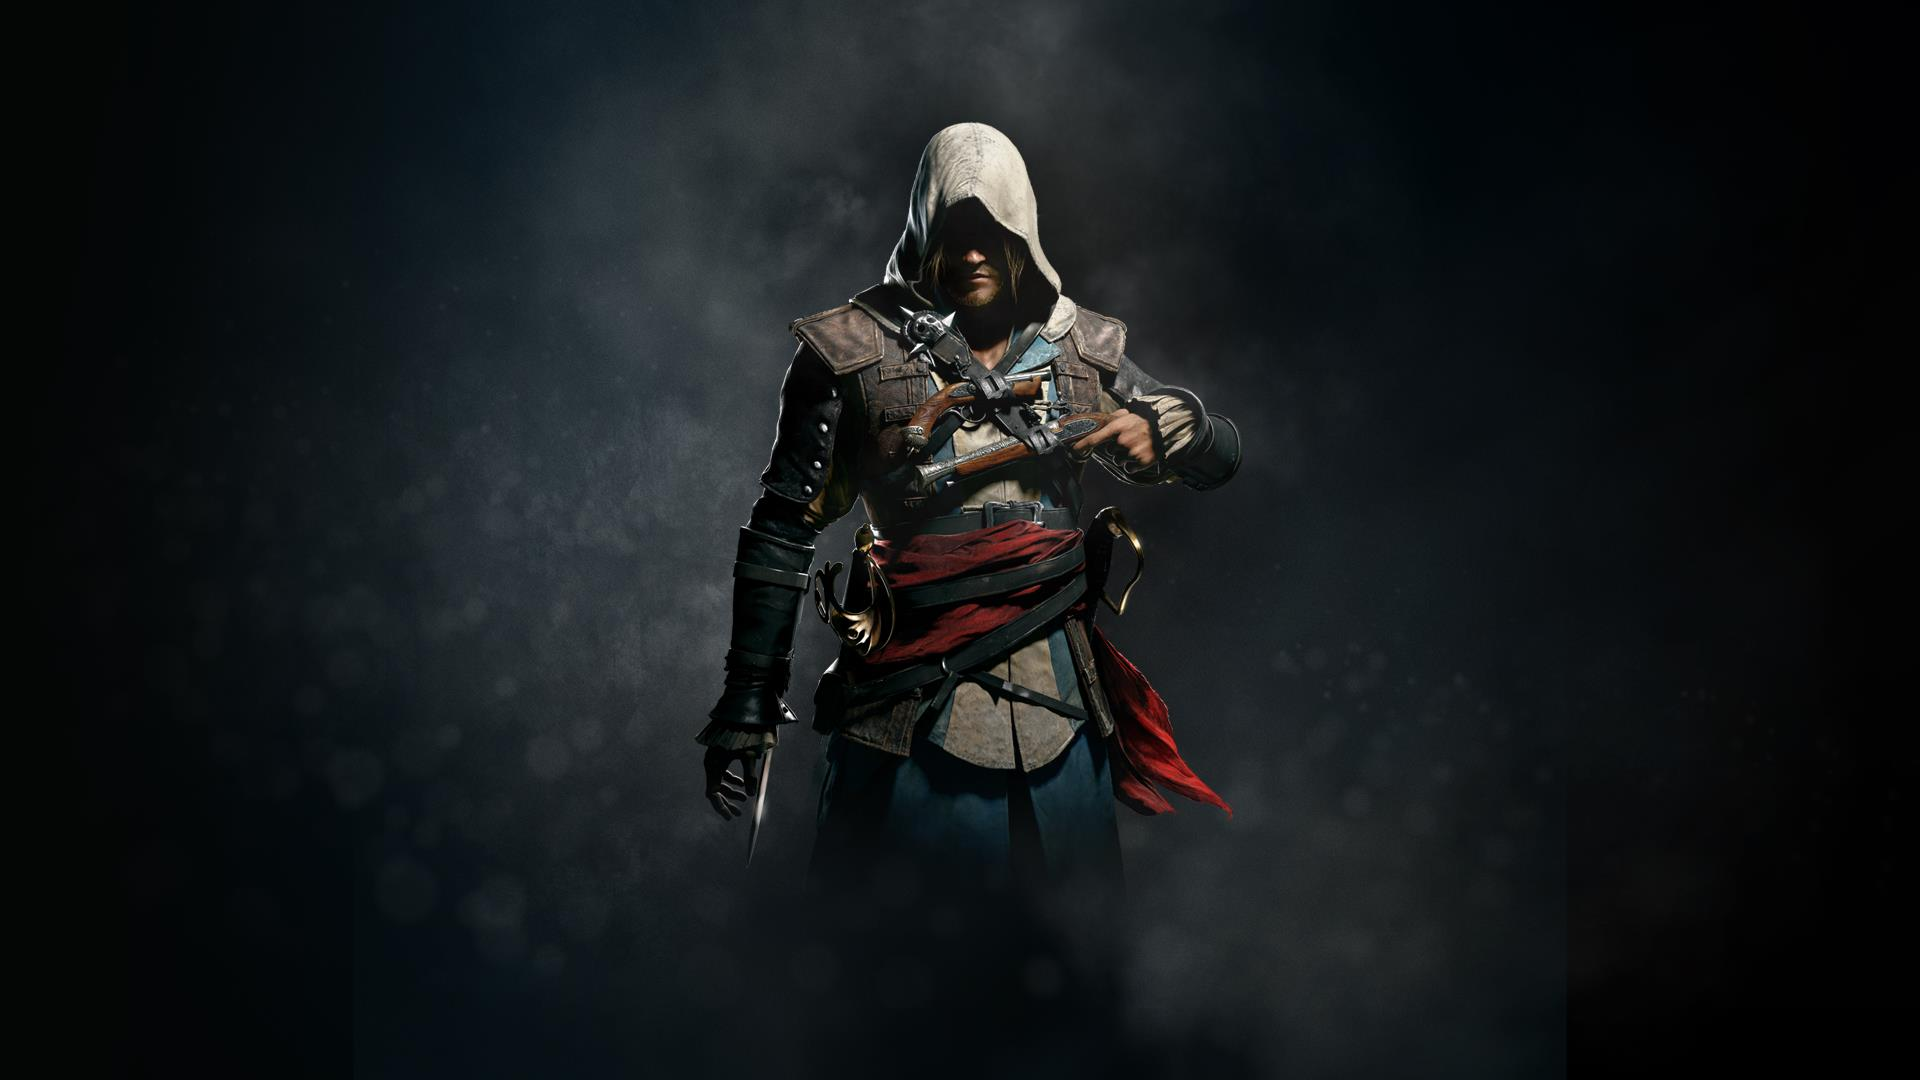 Personal bag of tricks in Assassin's Creed IV: Black Flag